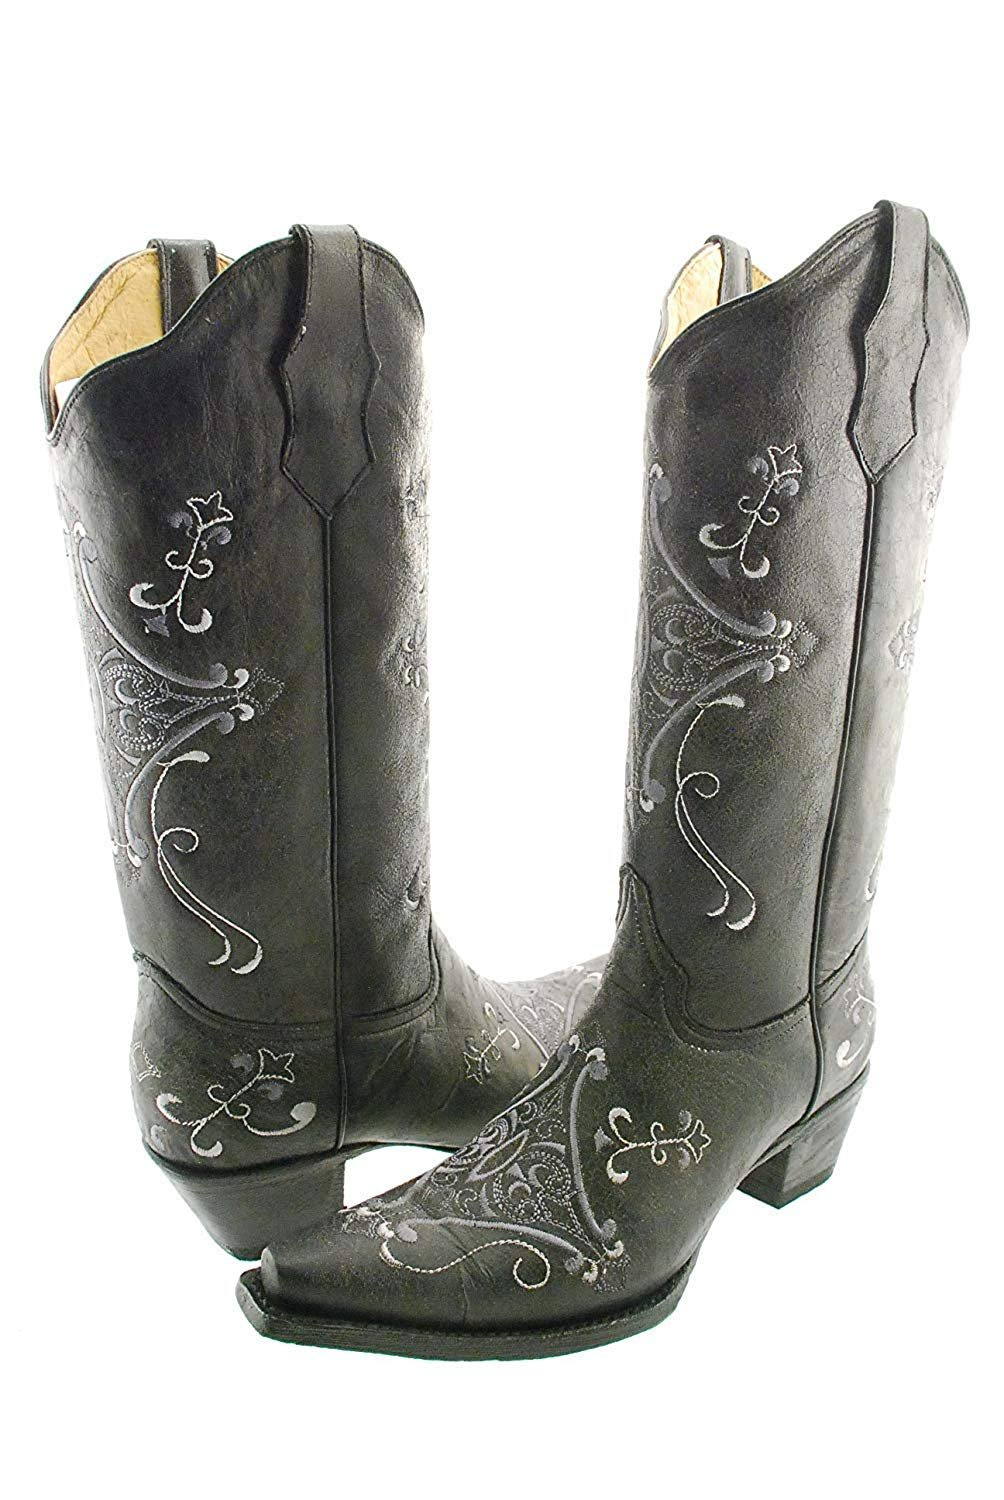 63c57638ae3 Details about CORRAL Women's Circle G Crackle Scroll Bone Embroidered  Western Boot